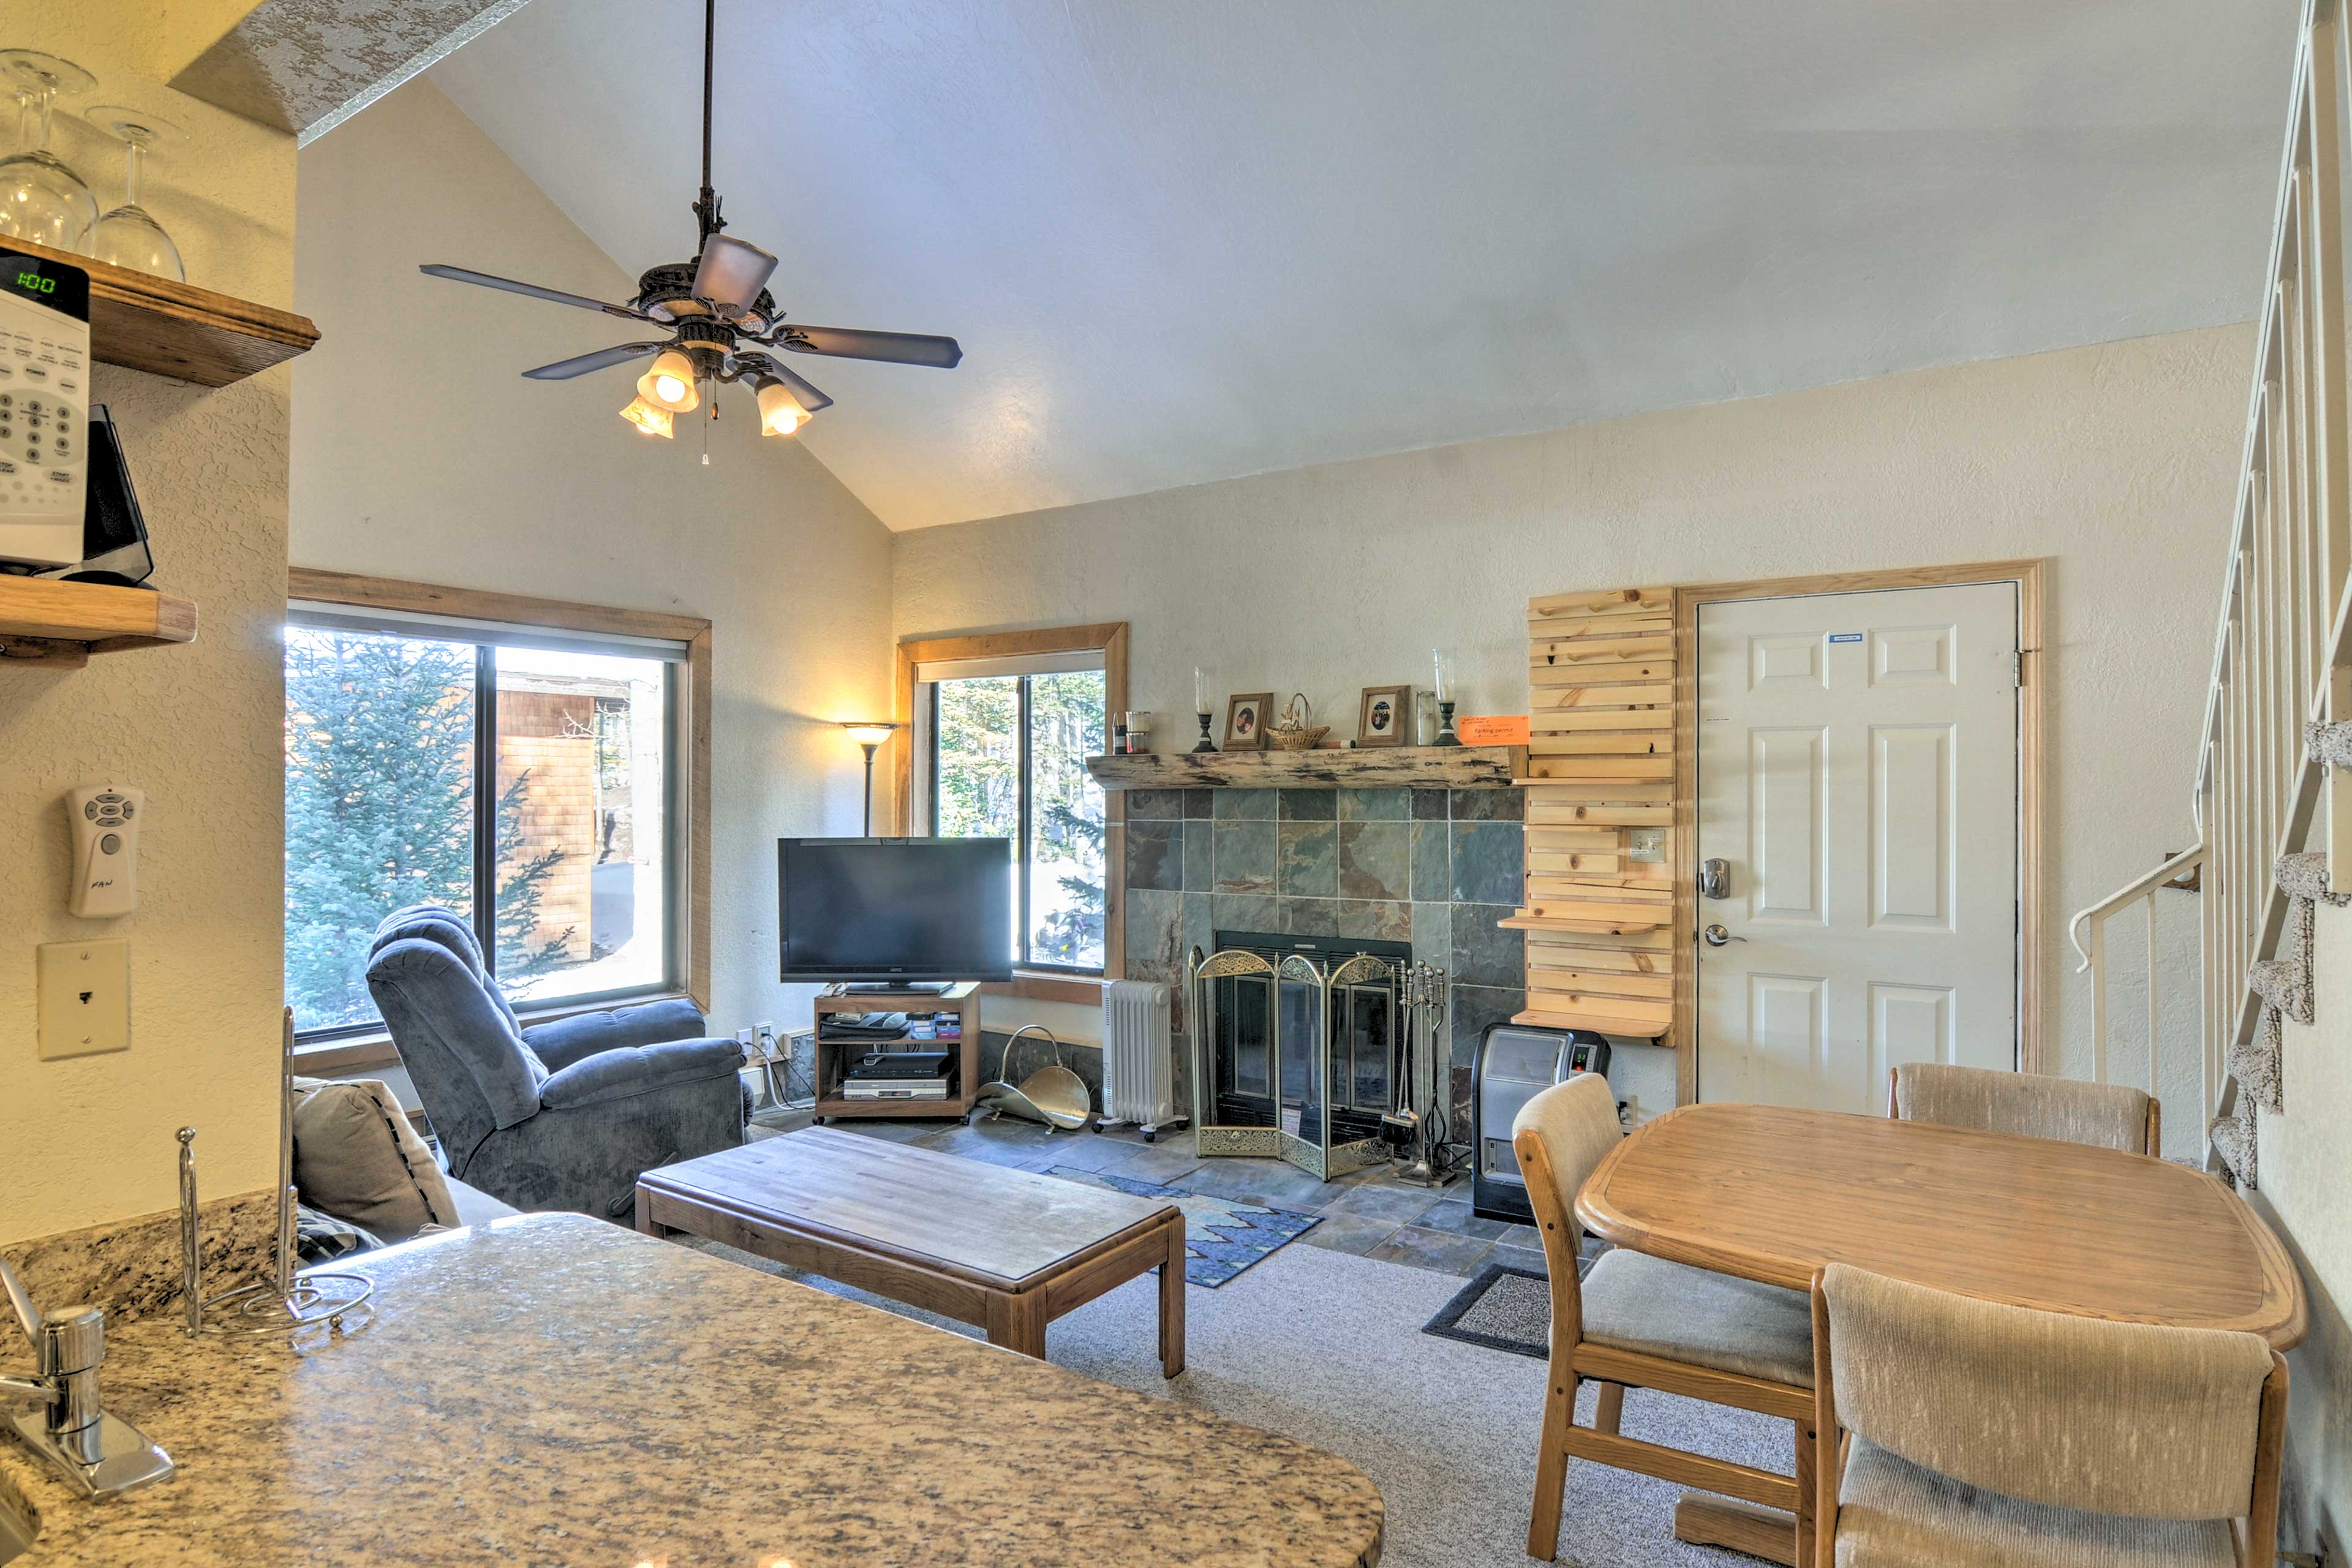 Spread out across 1,100 square feet of living space.